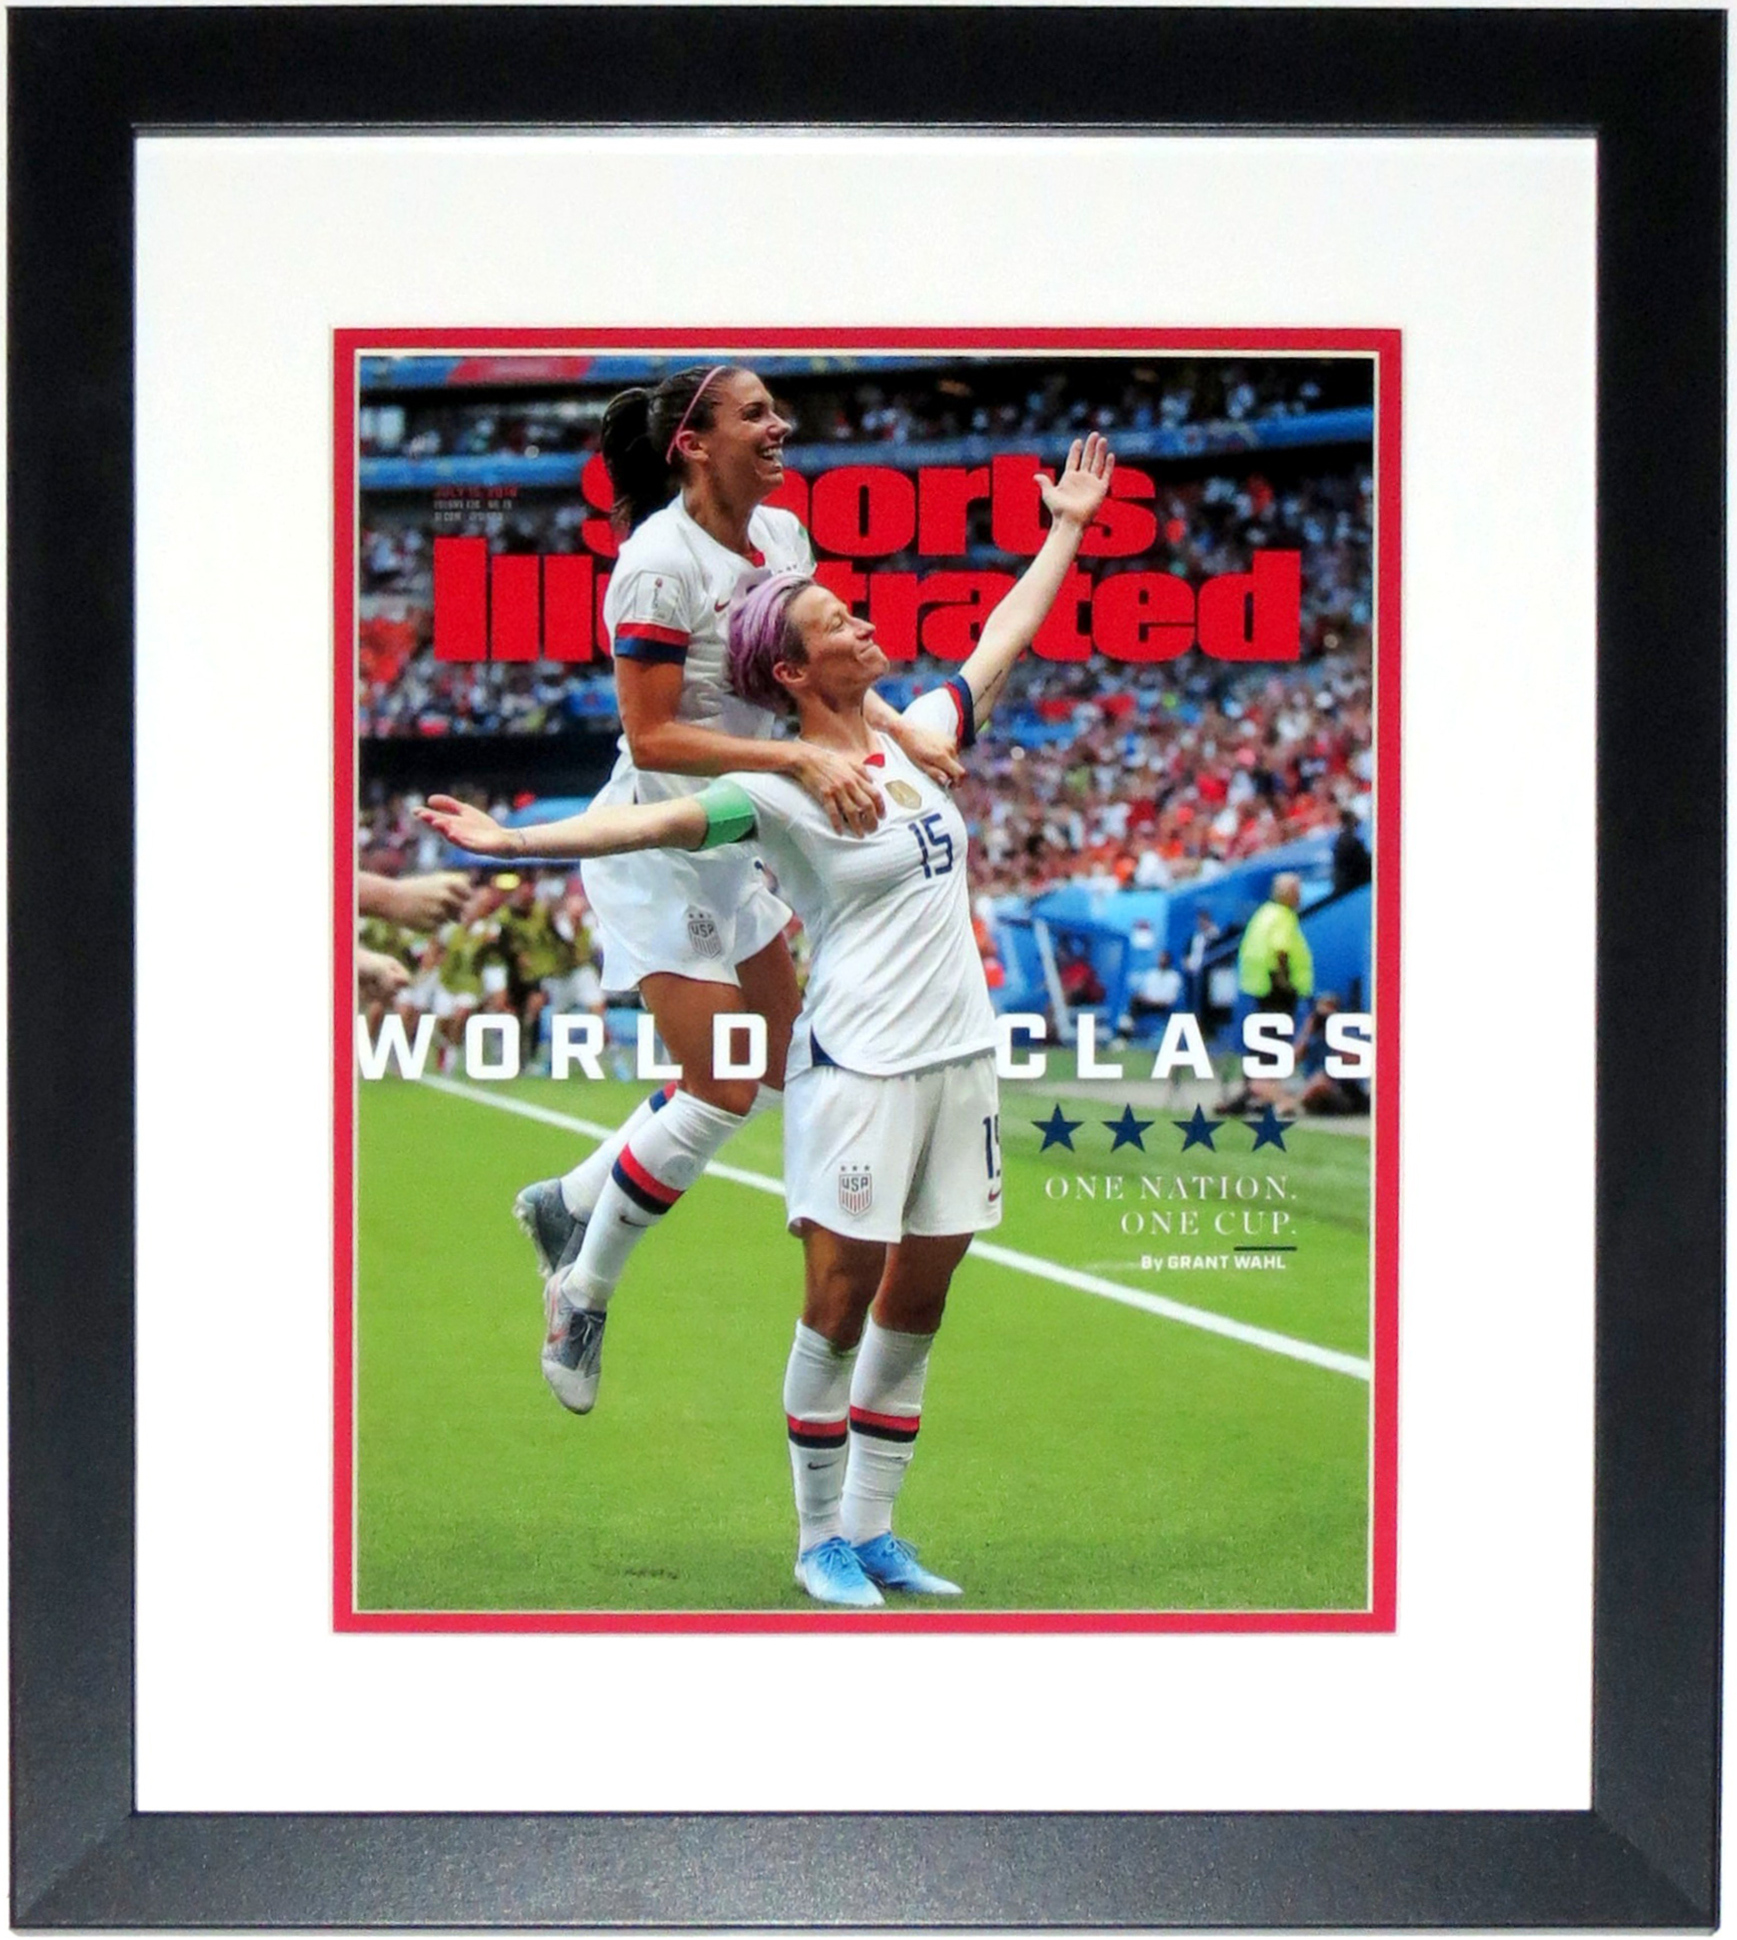 Megan Rapinoe & Alex Morgan Sports Illustrated 2019 World Cup 11x14 Cover Photo  - July 15th 2019 - Professionally Framed